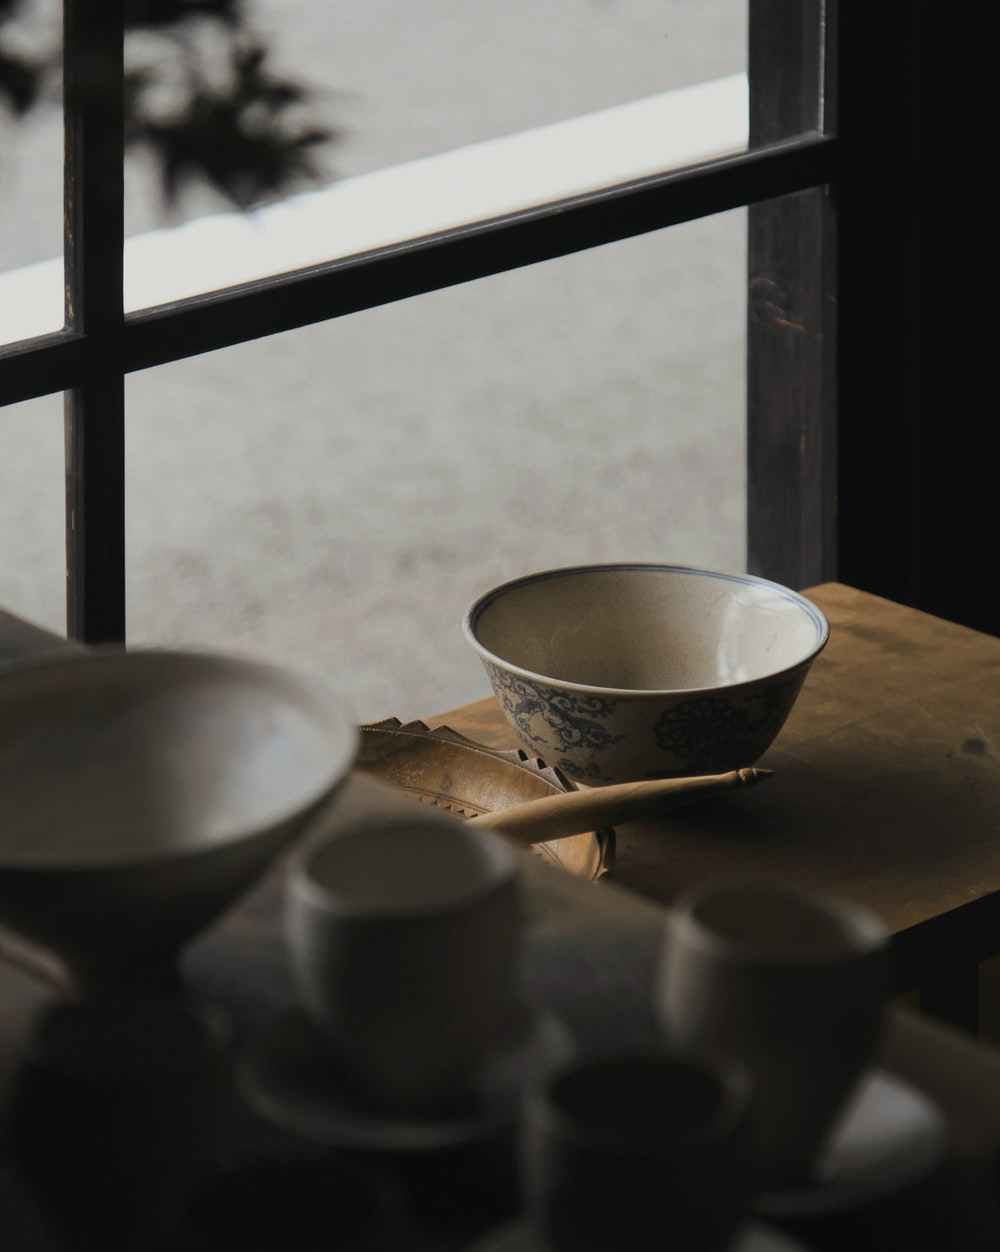 round white and blue ceramic bowl on wooden table near glass window